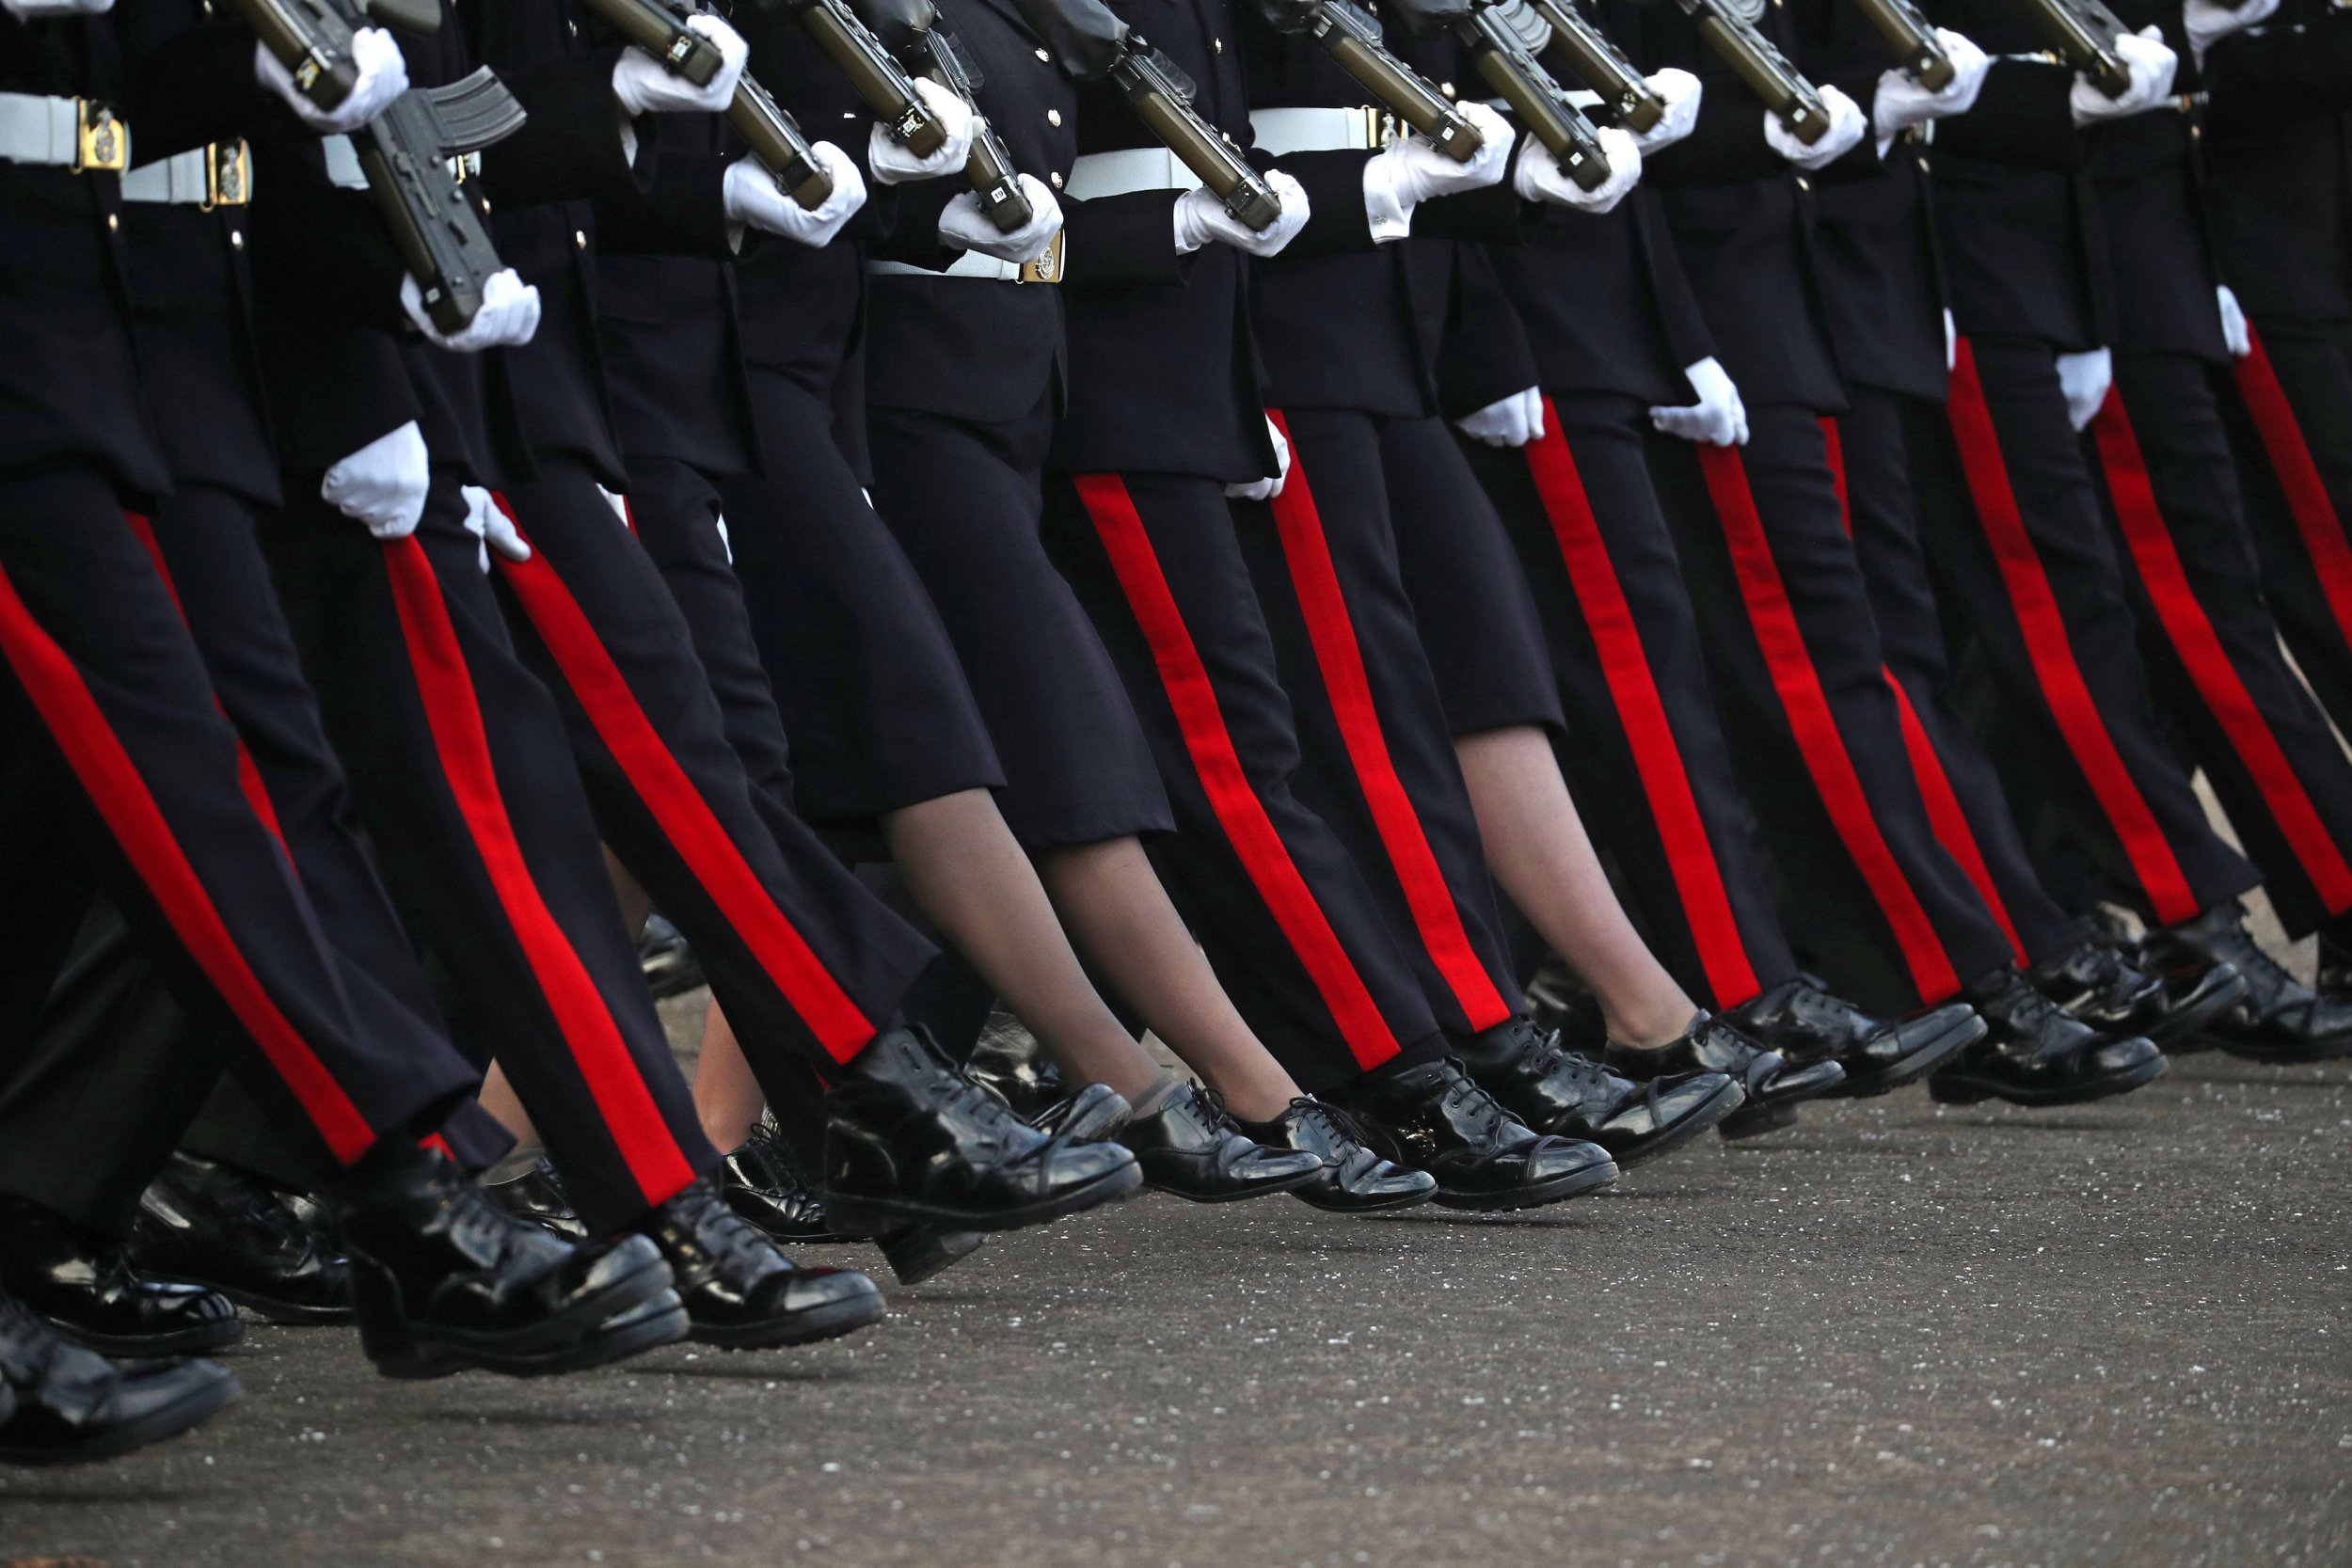 Female cadet found dead at Sandhurst 'after drunken night out' is named